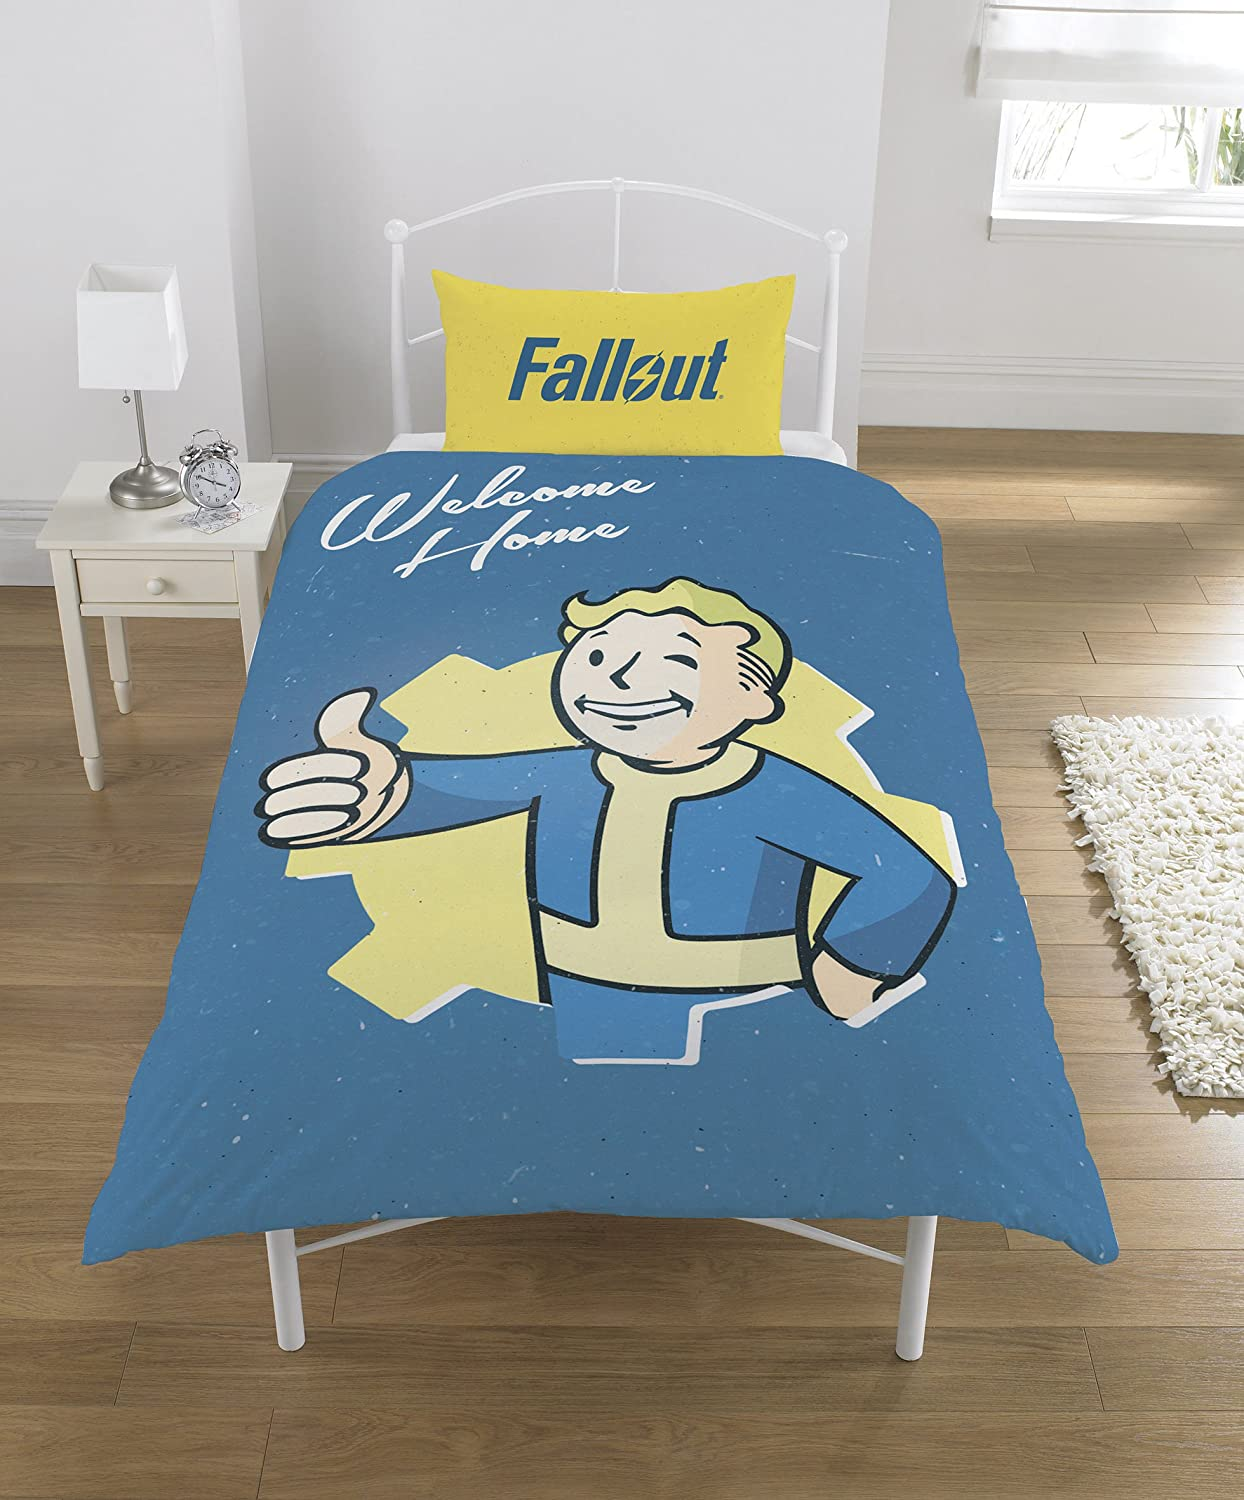 FALLOUT Duvet Set, Polycotton, Multi, Single Dreamtex Ltd SP1-FLT-VTB-12